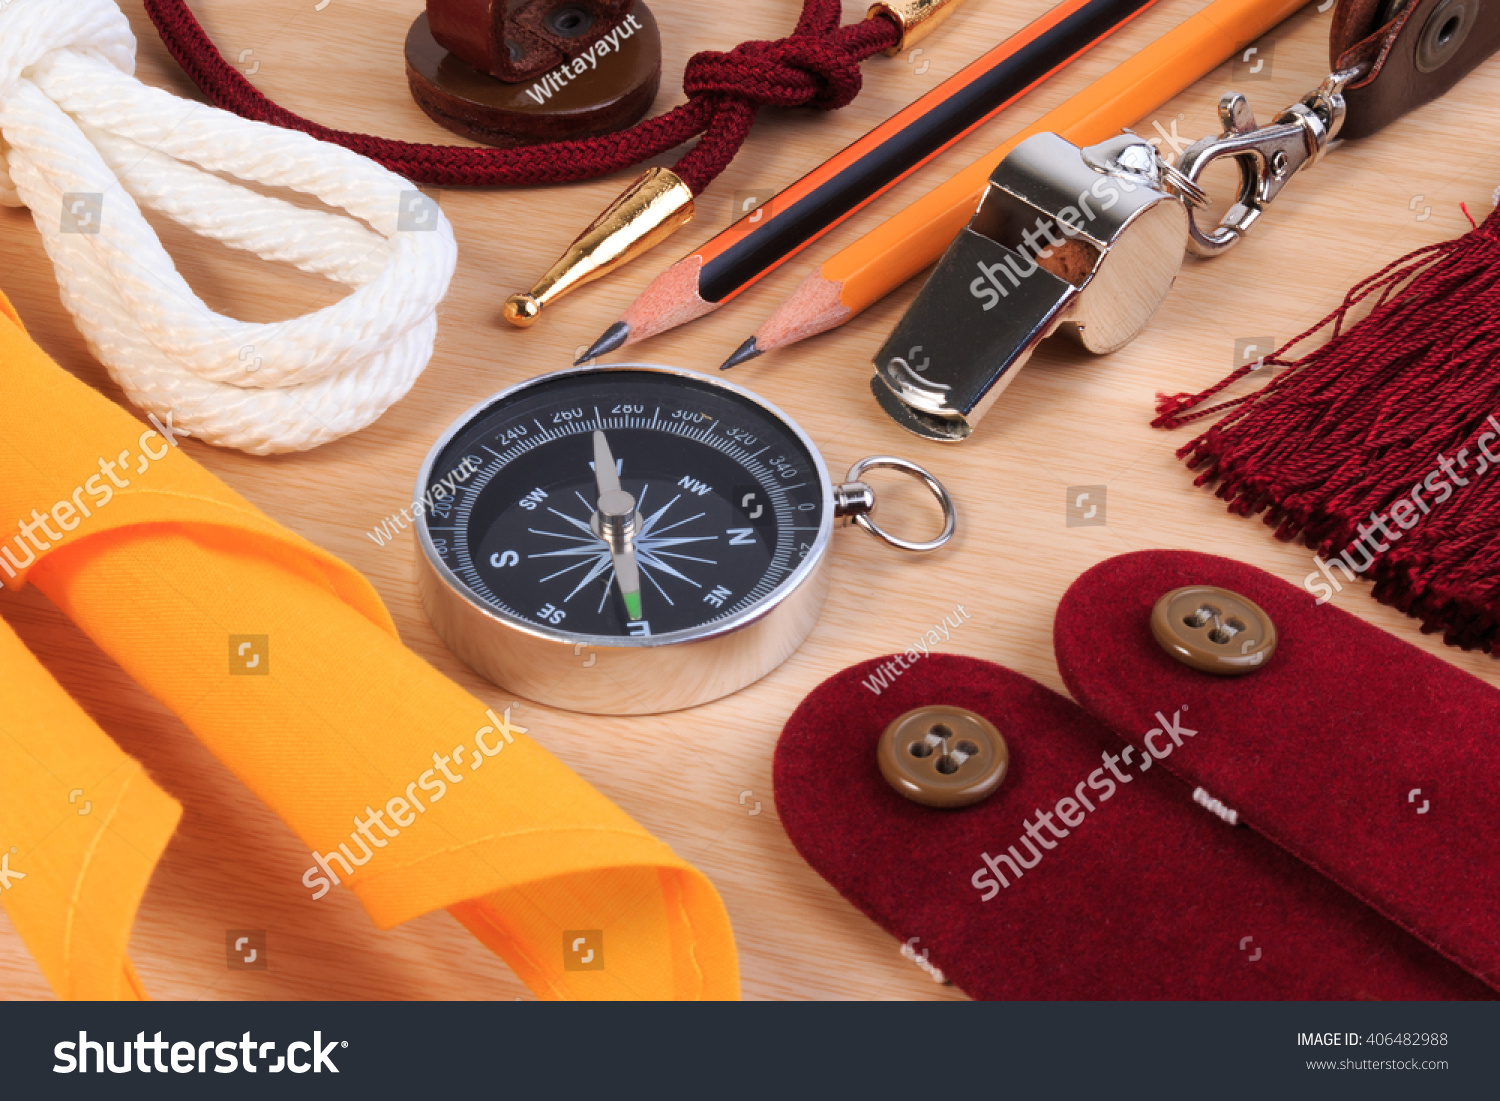 Set Various Boy Scout Camping Equipment Stock Photo 406482988